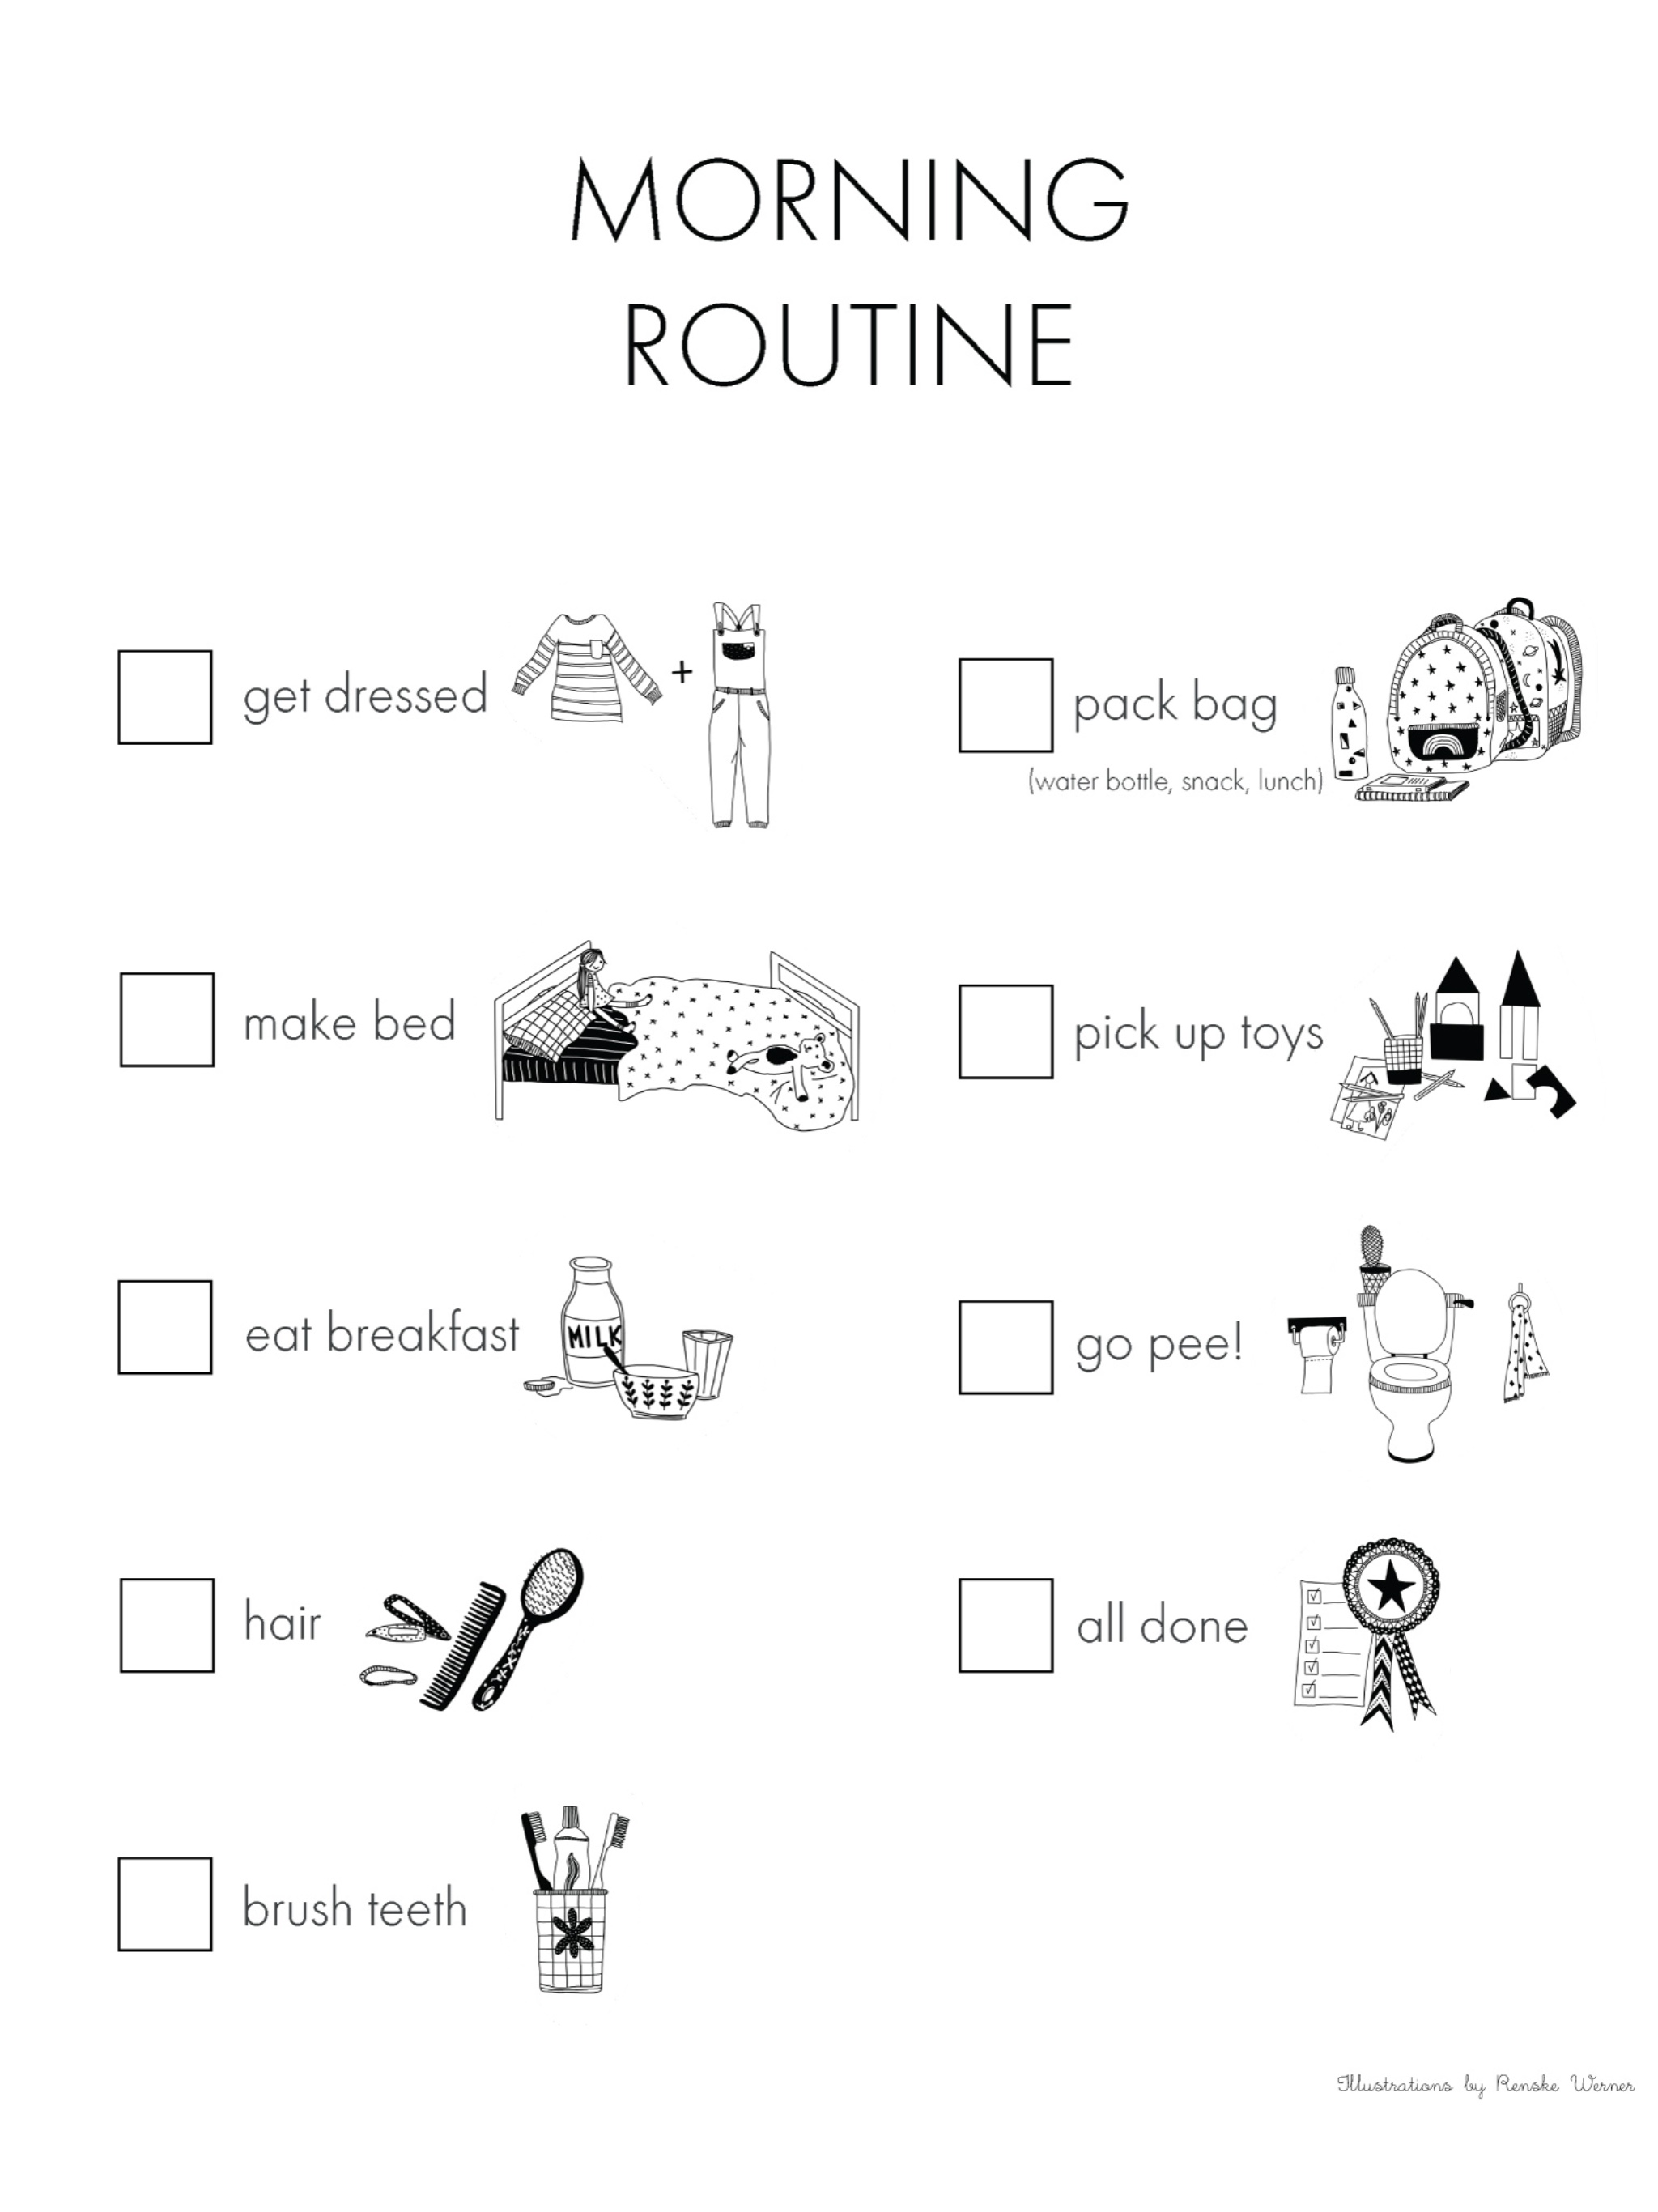 Morning routine chart free printable